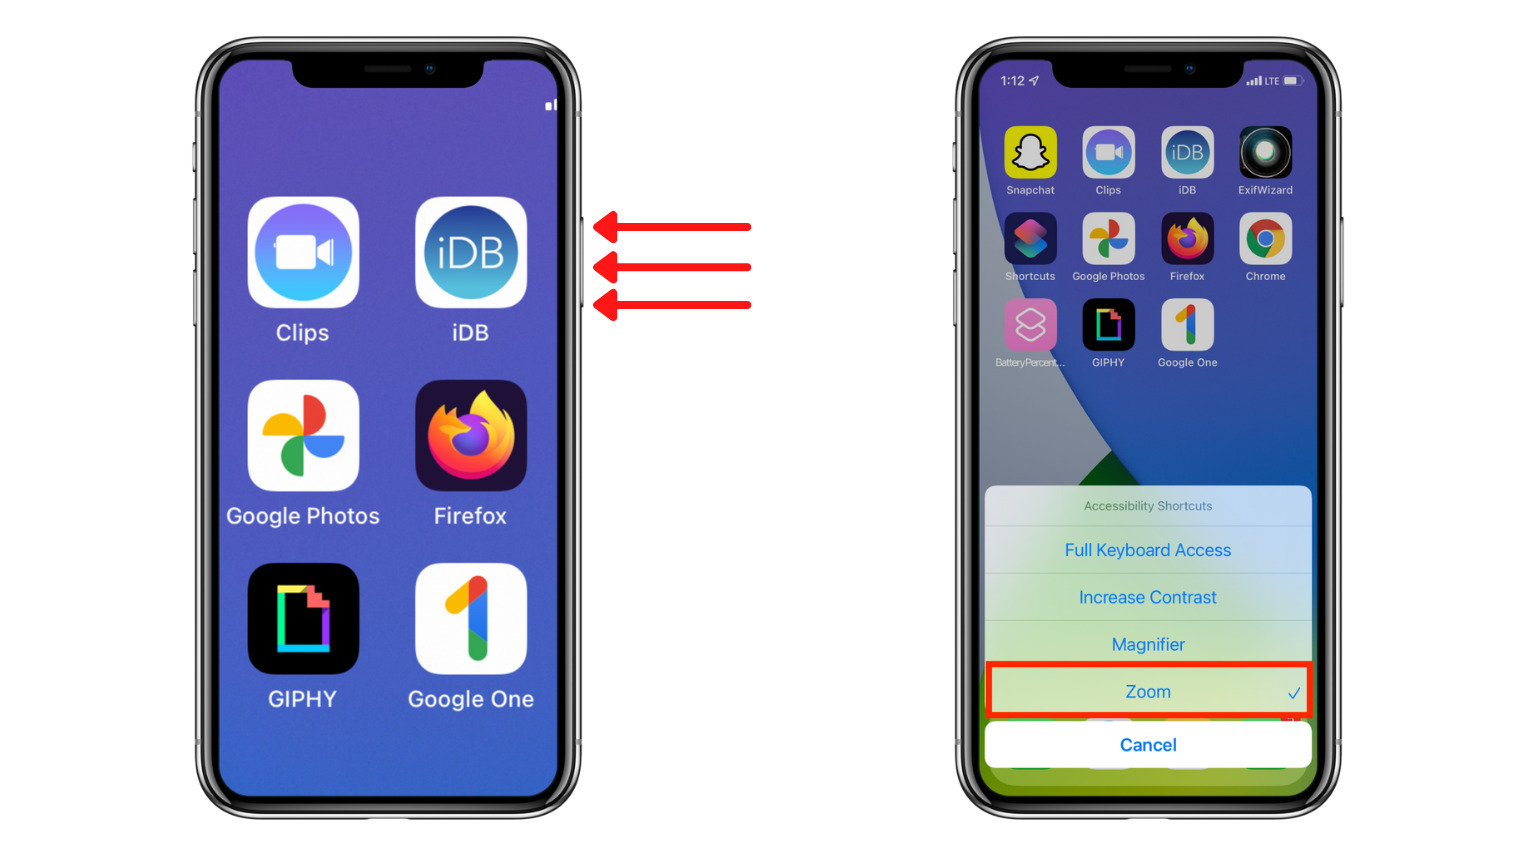 Triple Click Side Button on iPhone with Face ID to see Accessibility Shortcuts